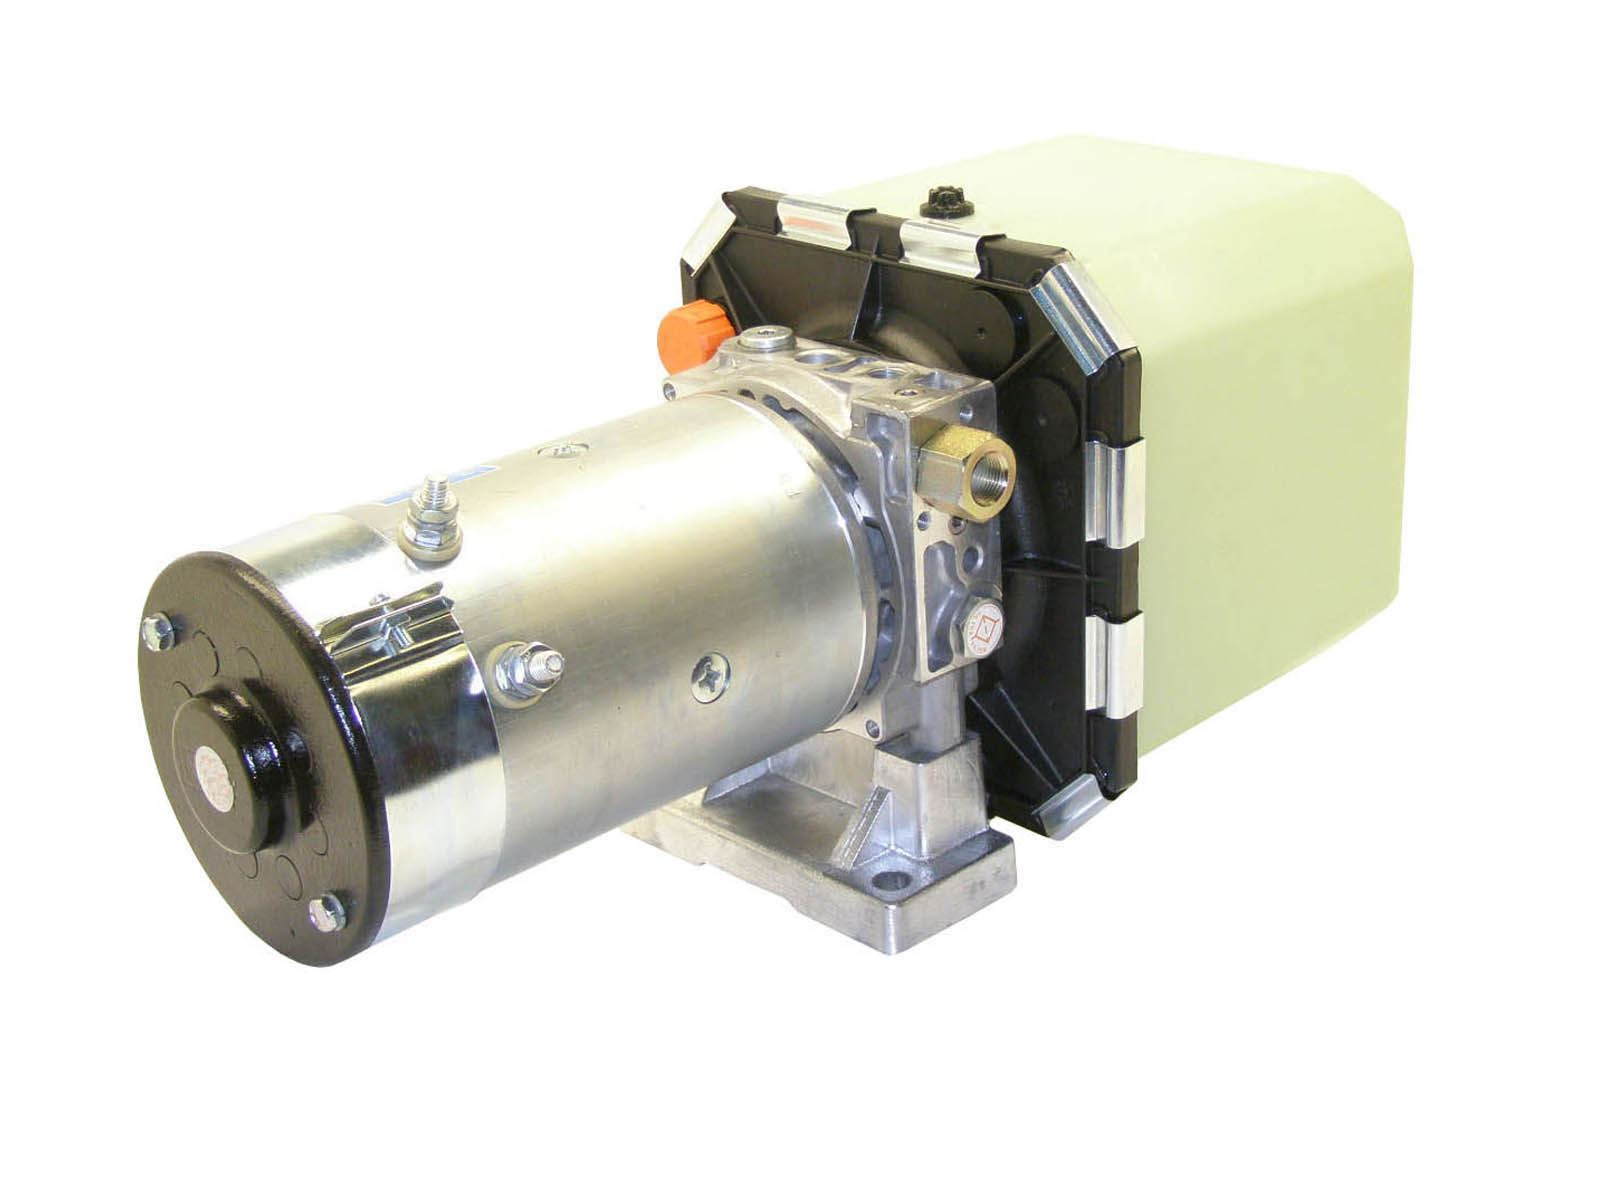 Hydraulic pump groups and generators